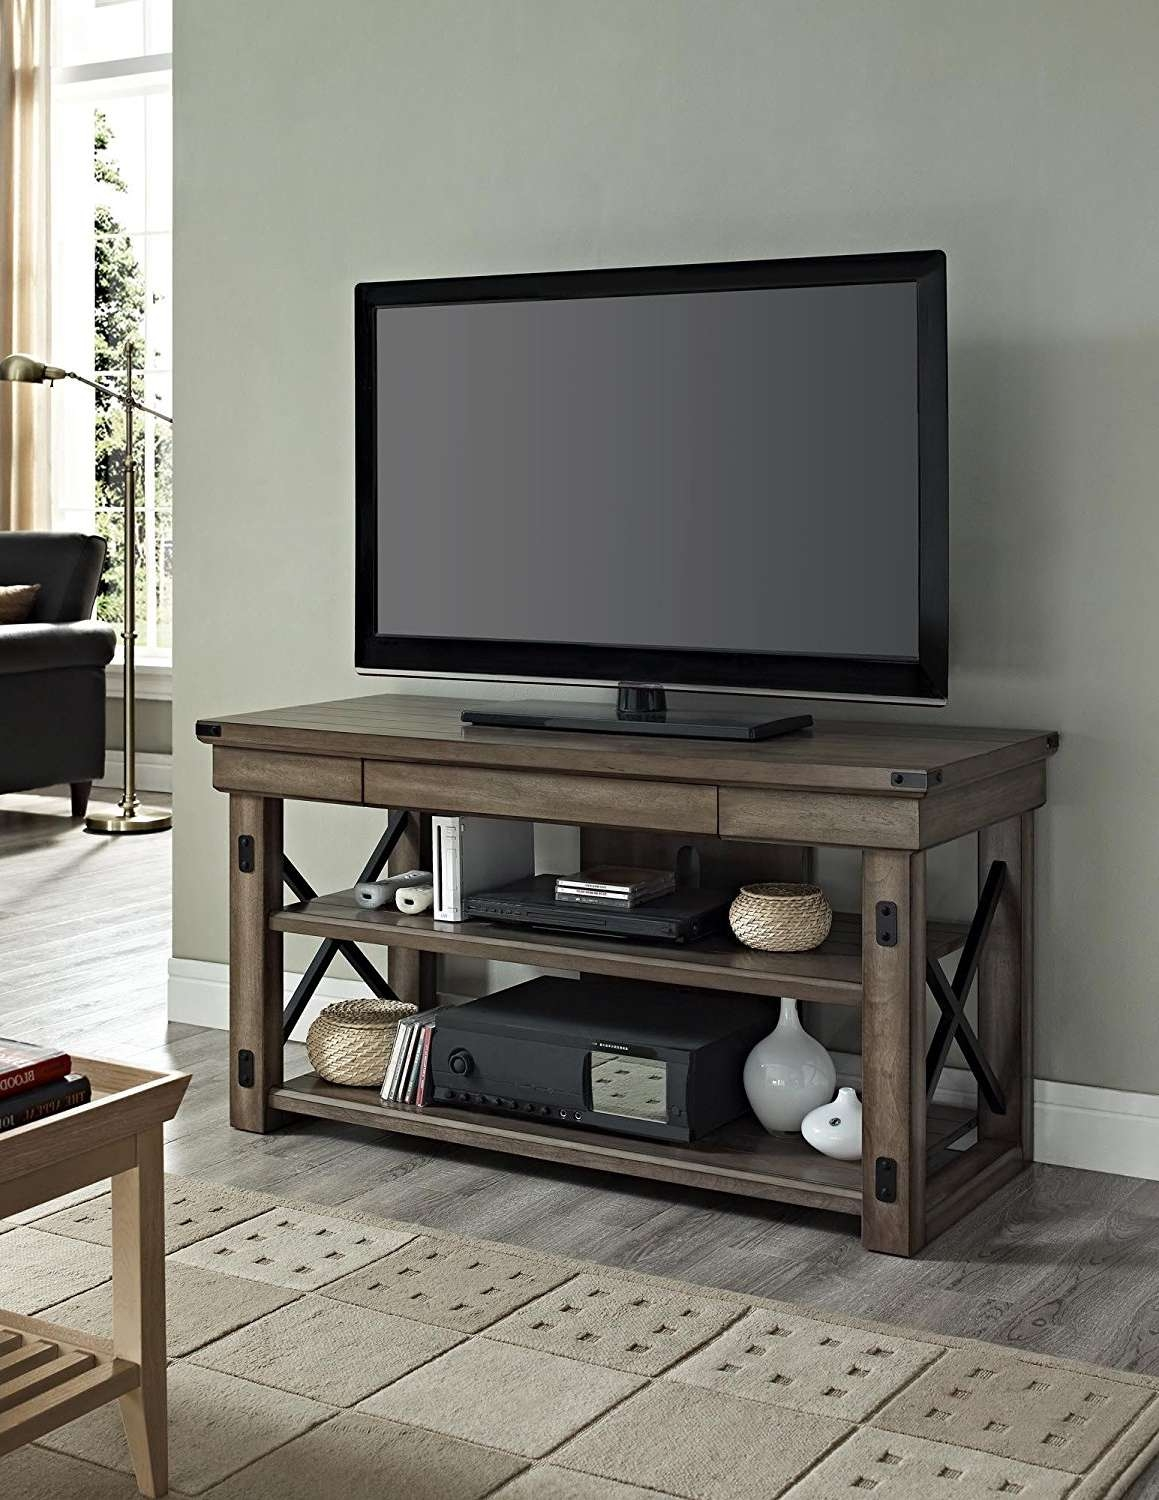 Epic Rustic Tv Stand 55 For Home Remodel Ideas With Rustic Tv For Rustic Tv Stands (View 17 of 20)